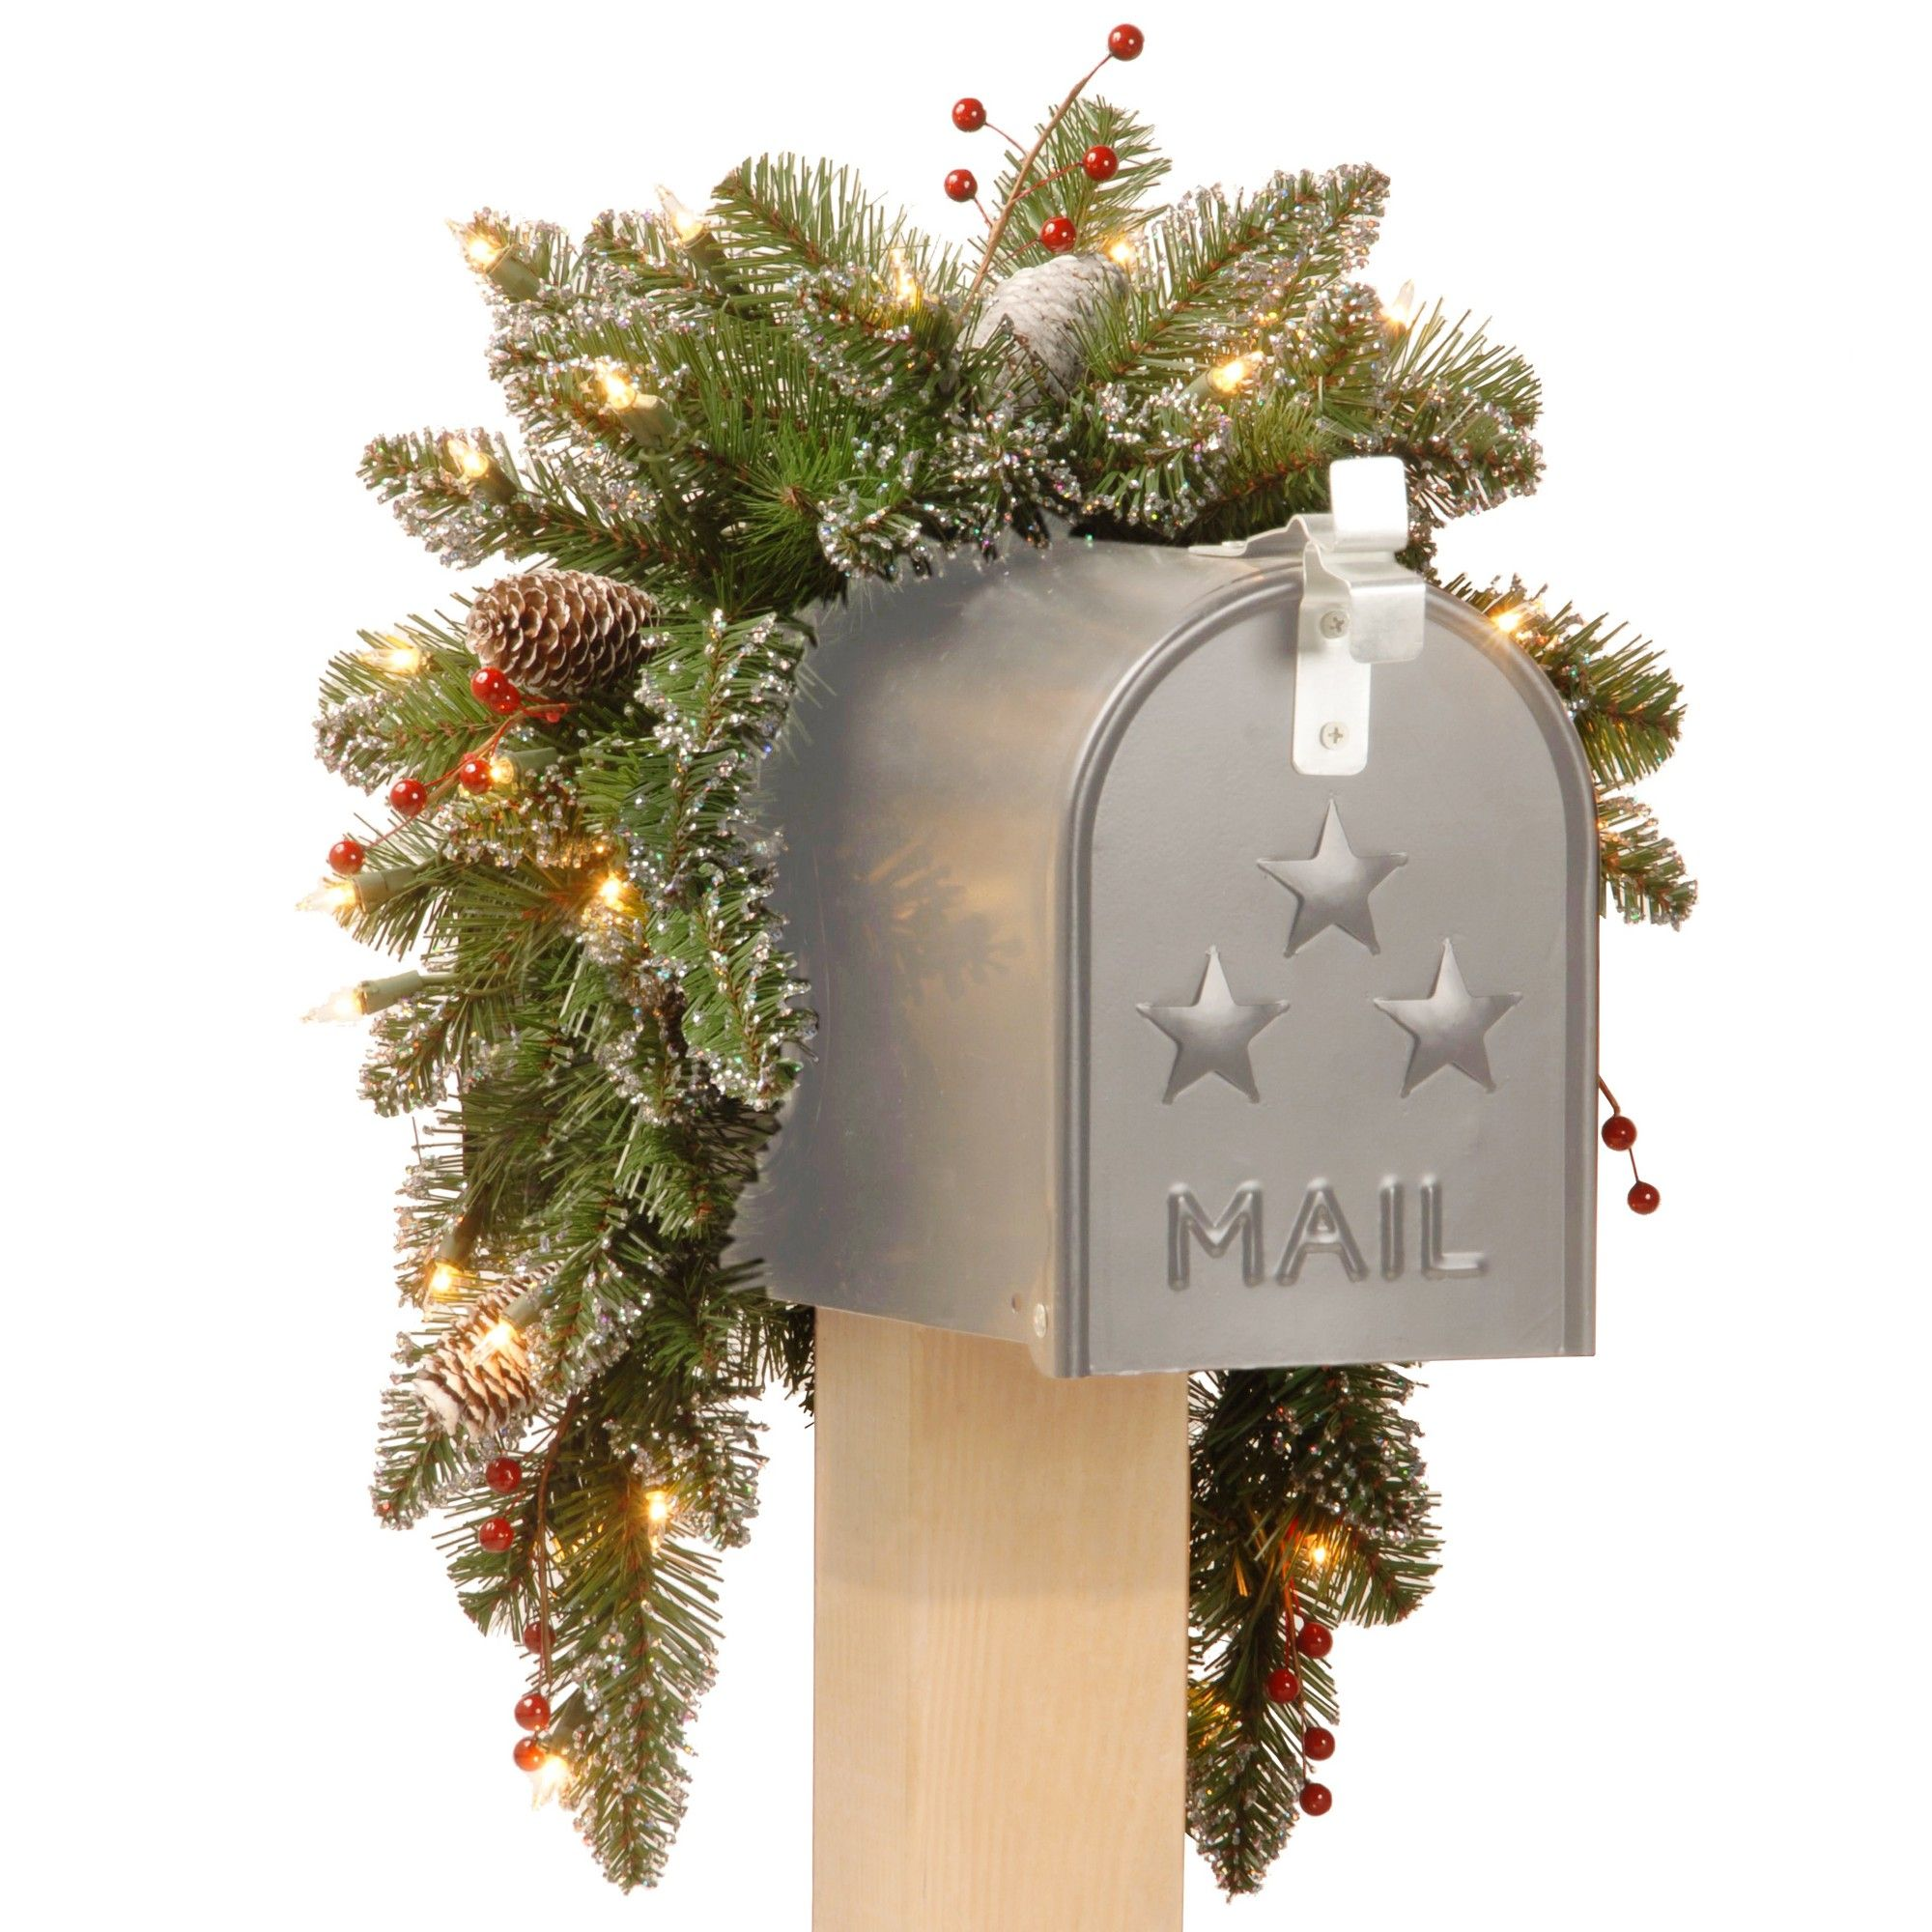 36 Glittery Mountain Spruce Mailbox Swag with Battery